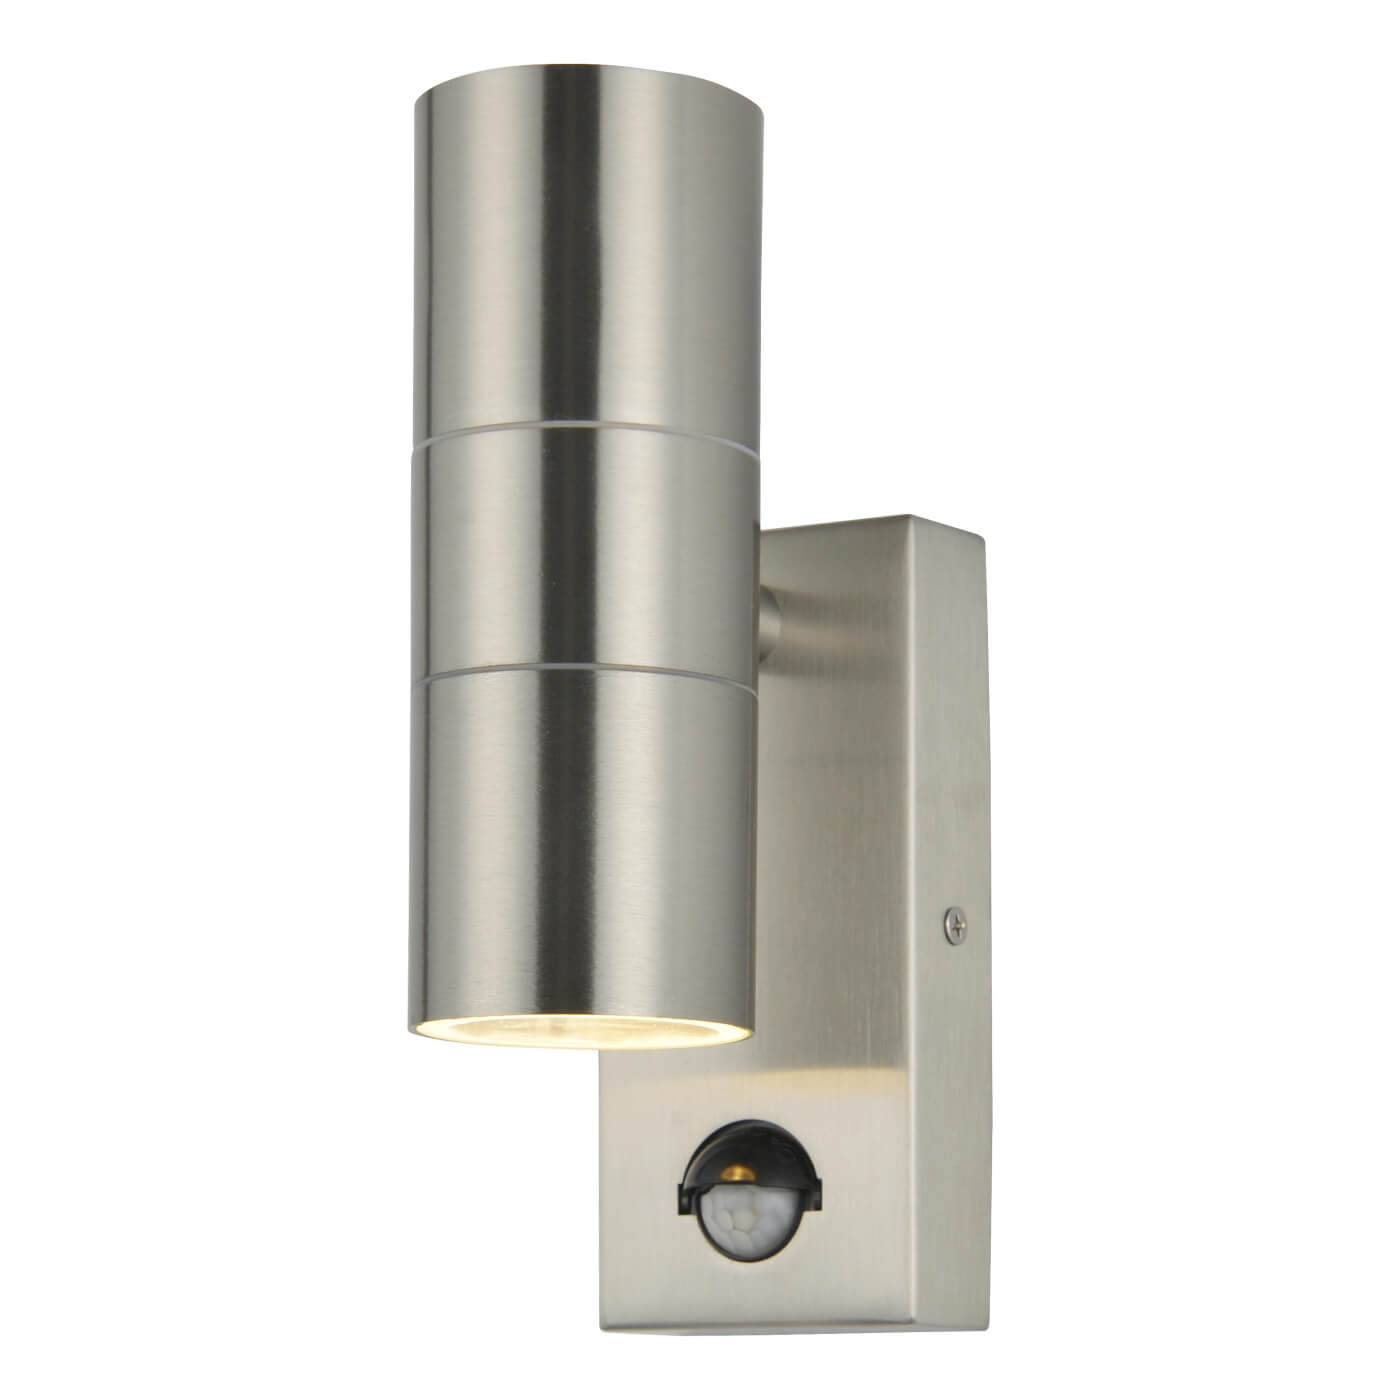 Zinc Leto Up/Down Outdoor Light With PIR